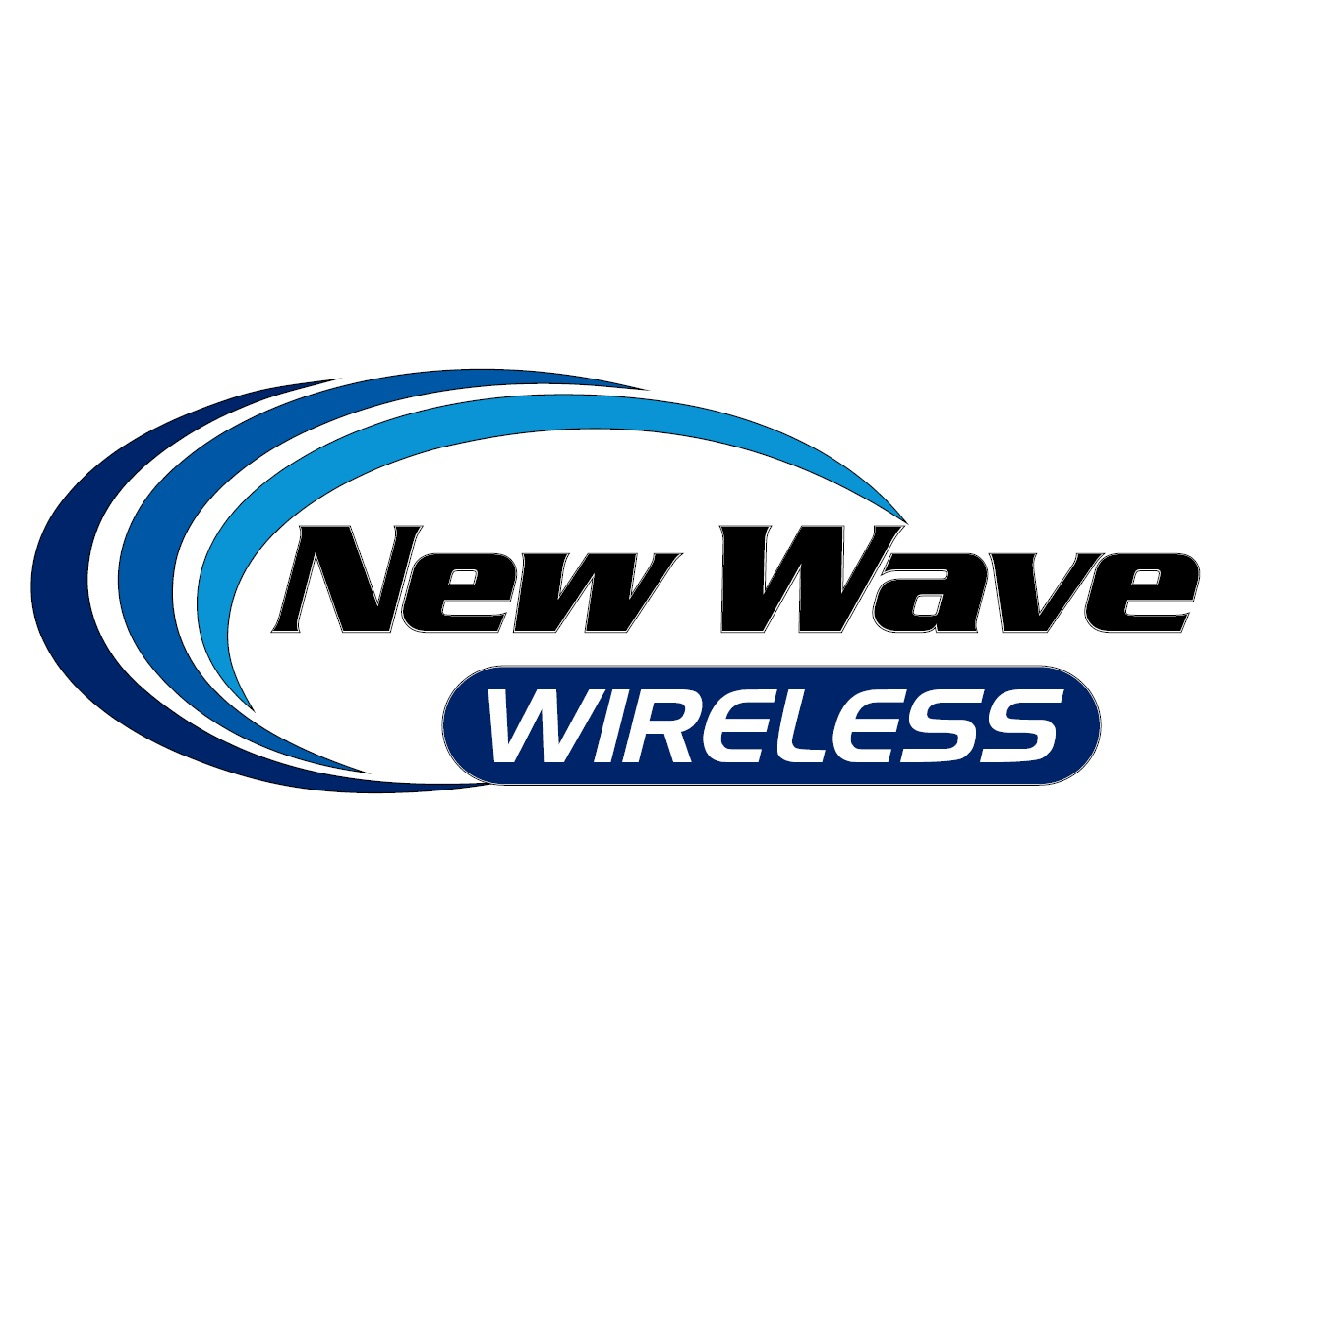 New Wave Wireless